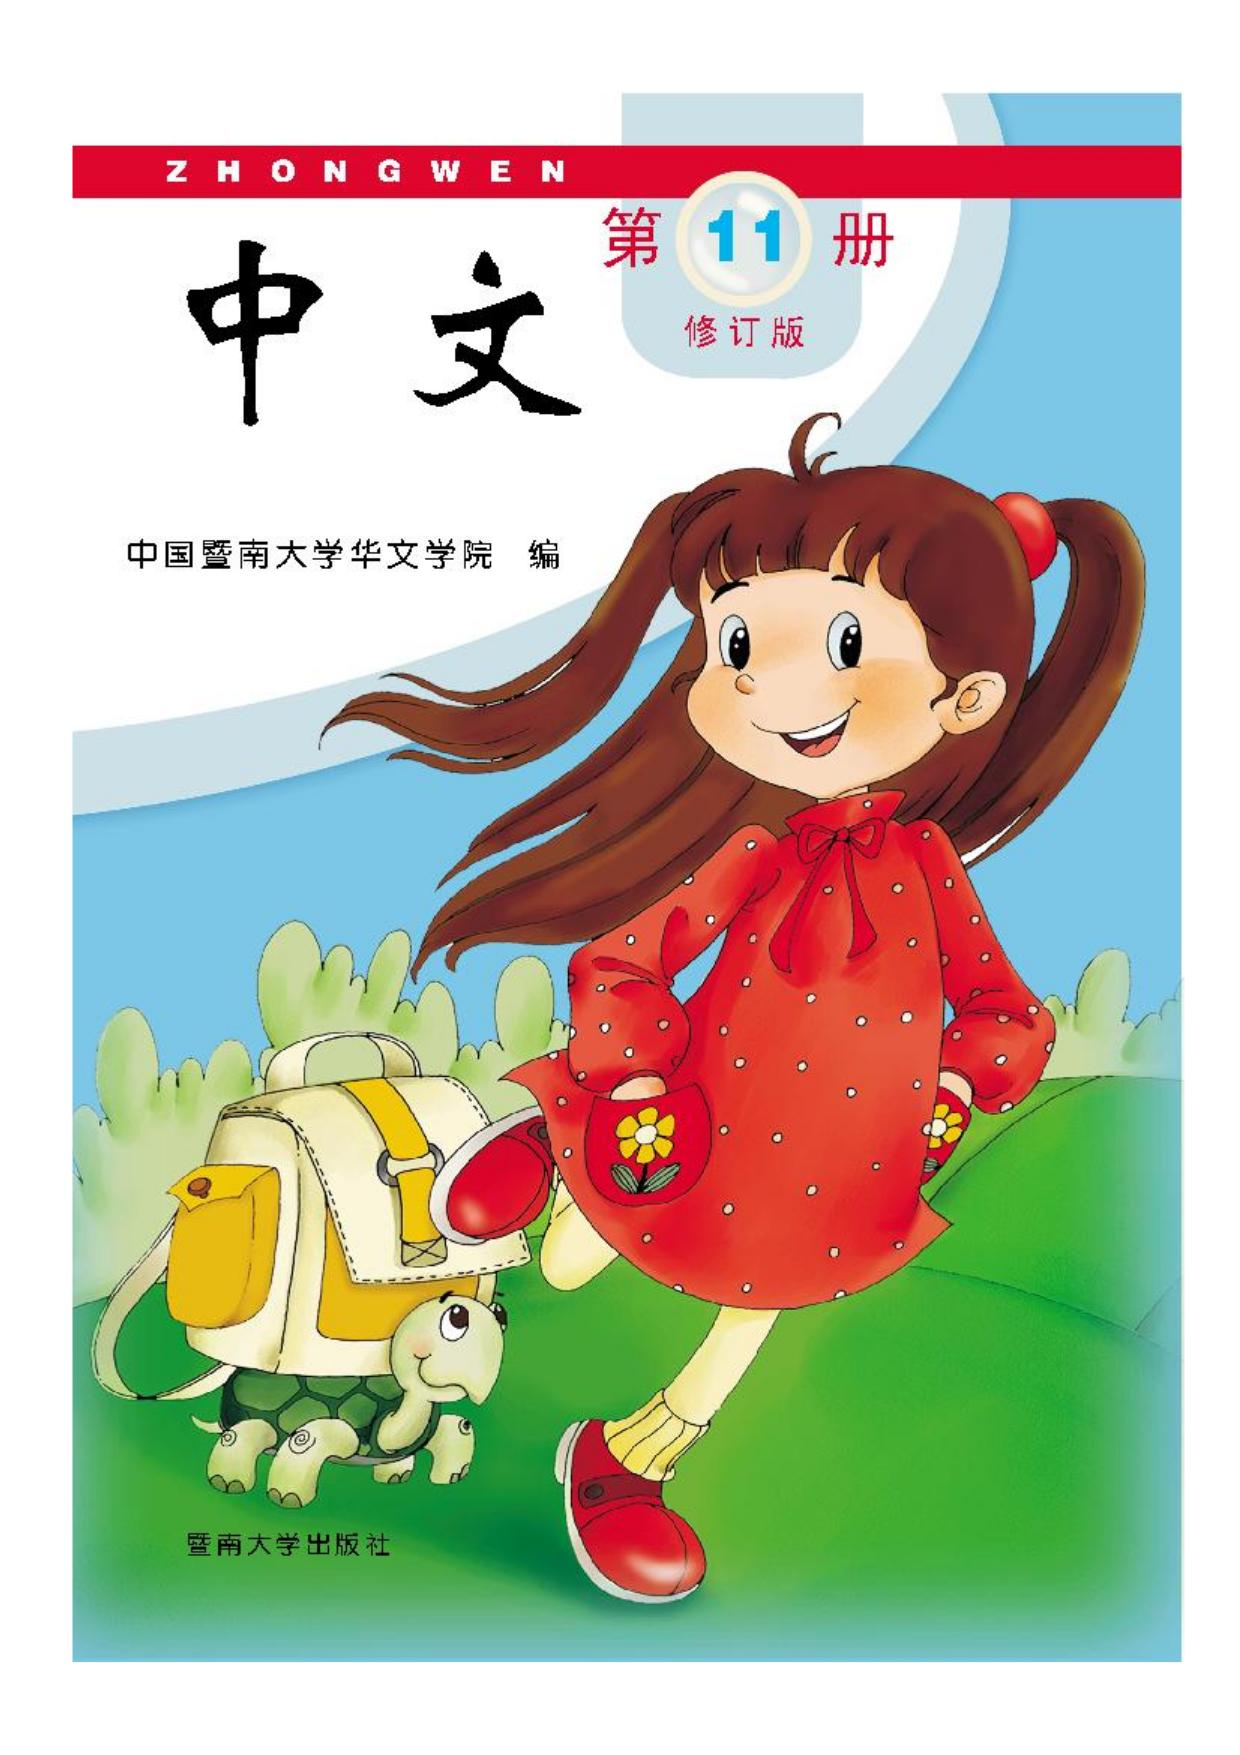 front cover of the textbook ZhongWen Revised Version Level 11